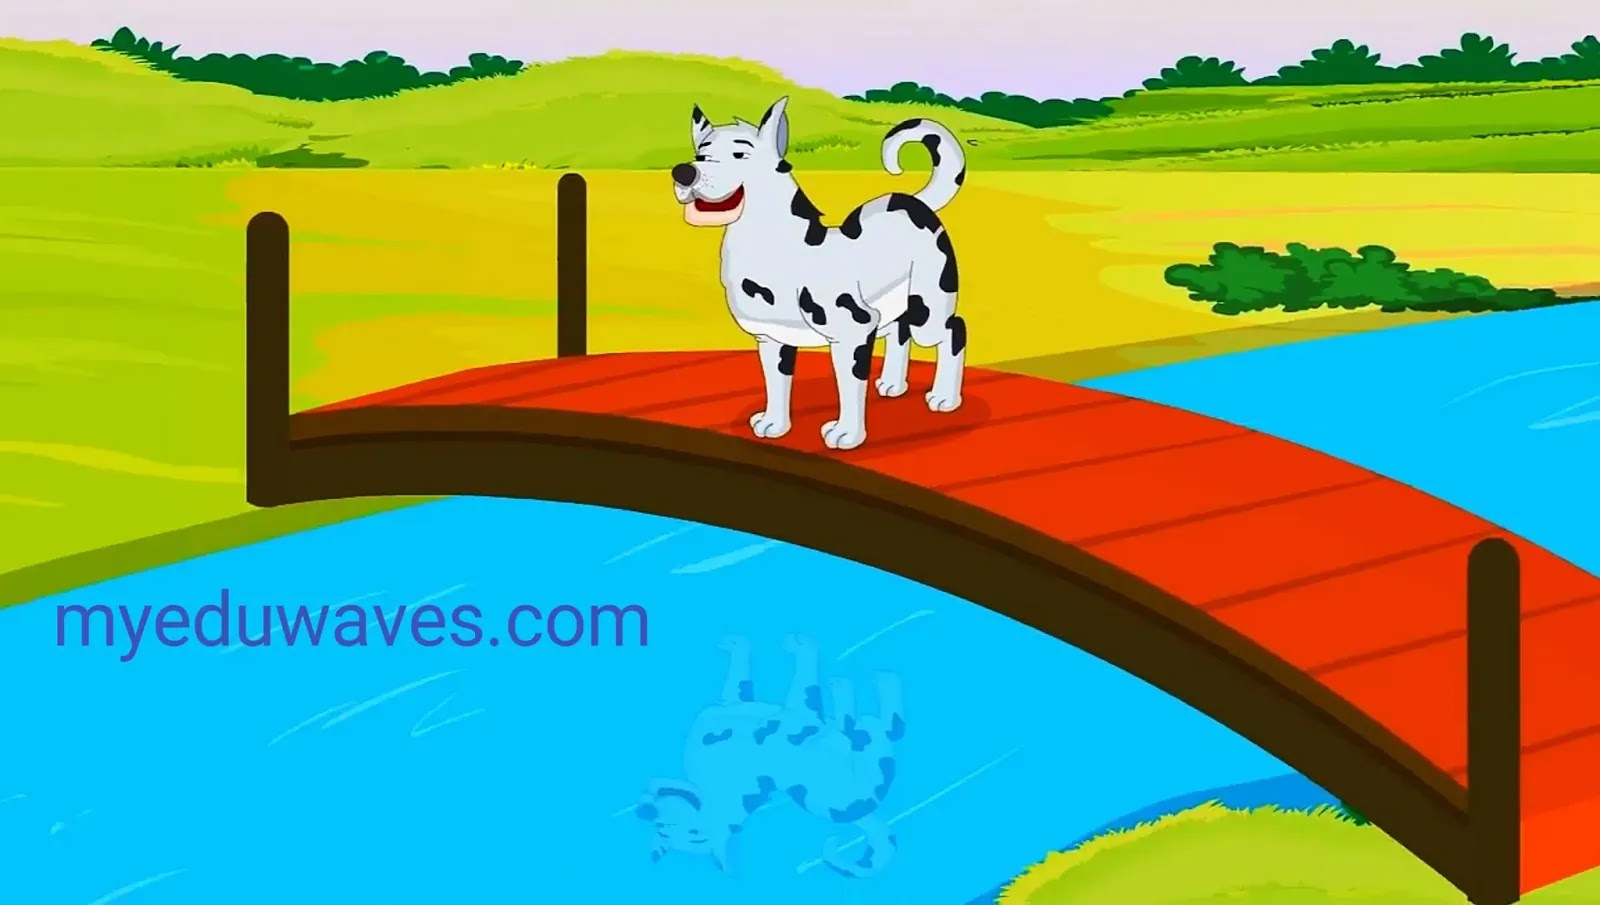 The greedy dog short story with moral for kids